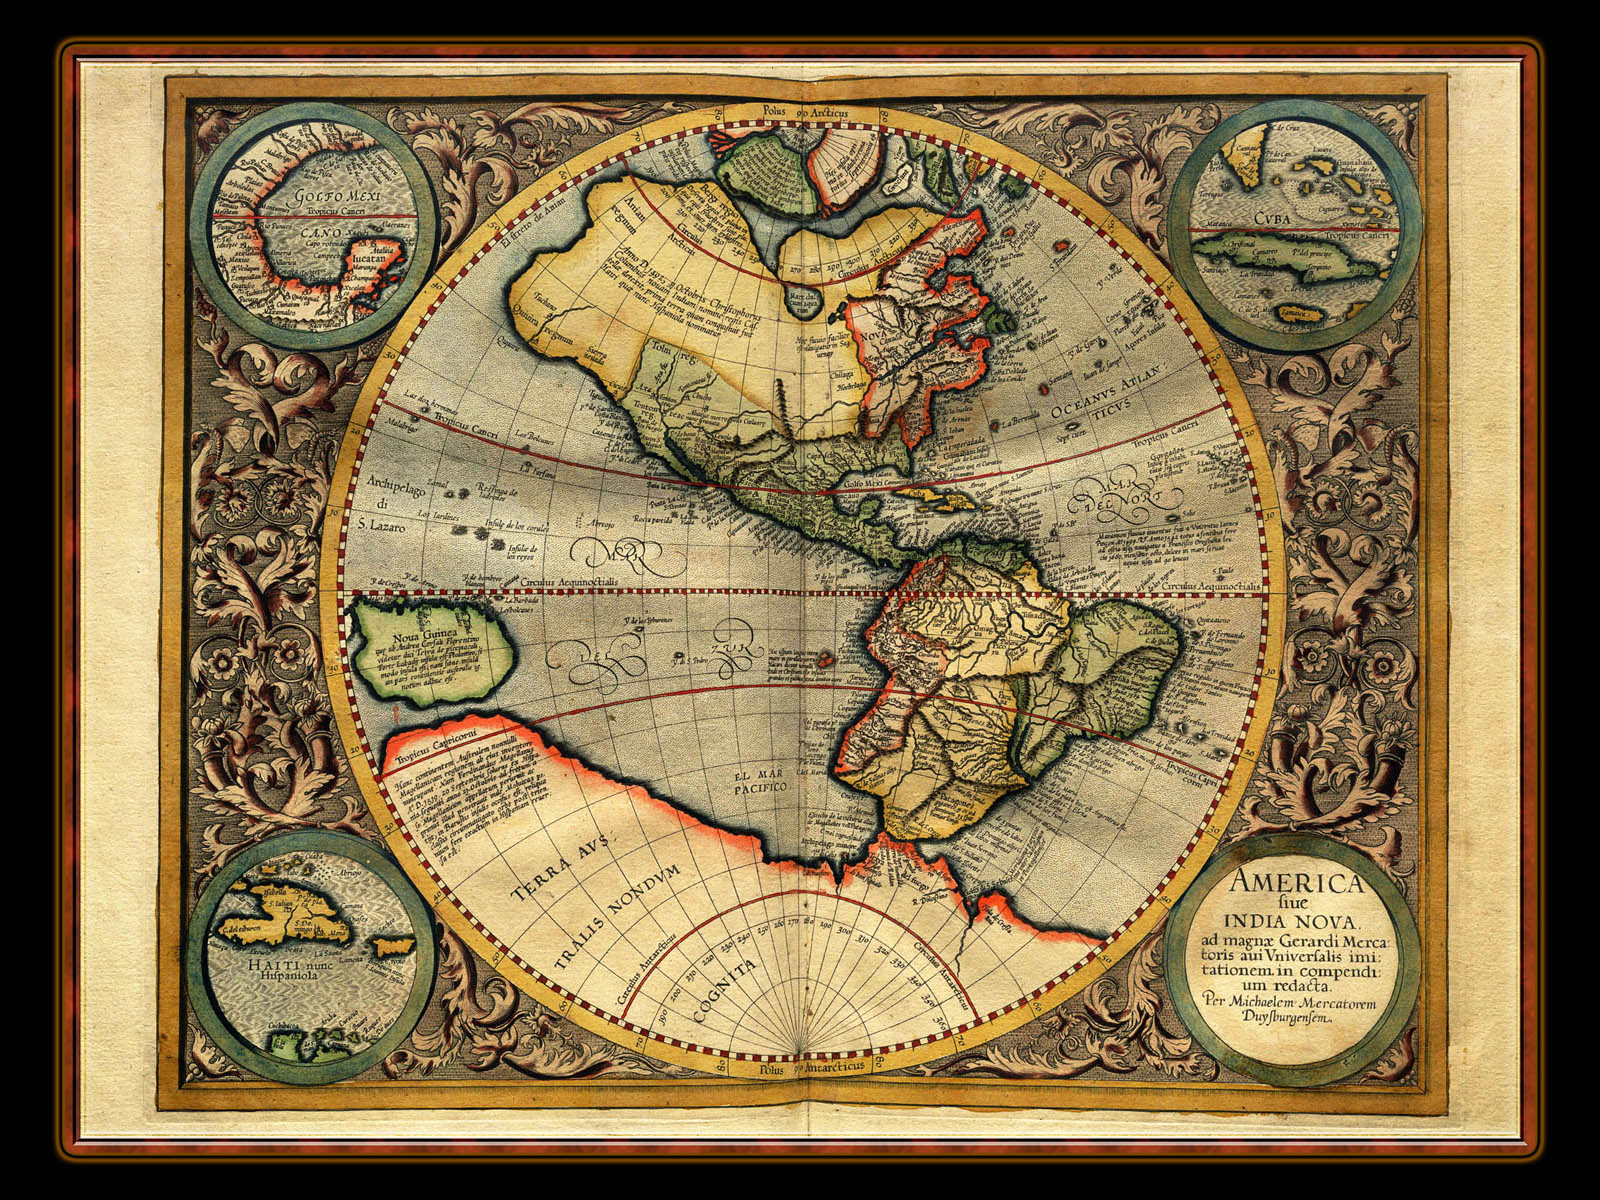 """Gerhard Mercator 1595 World Atlas - Cosmographicae"" - Wallpaper No. 102 of 106. Right click for saving options."